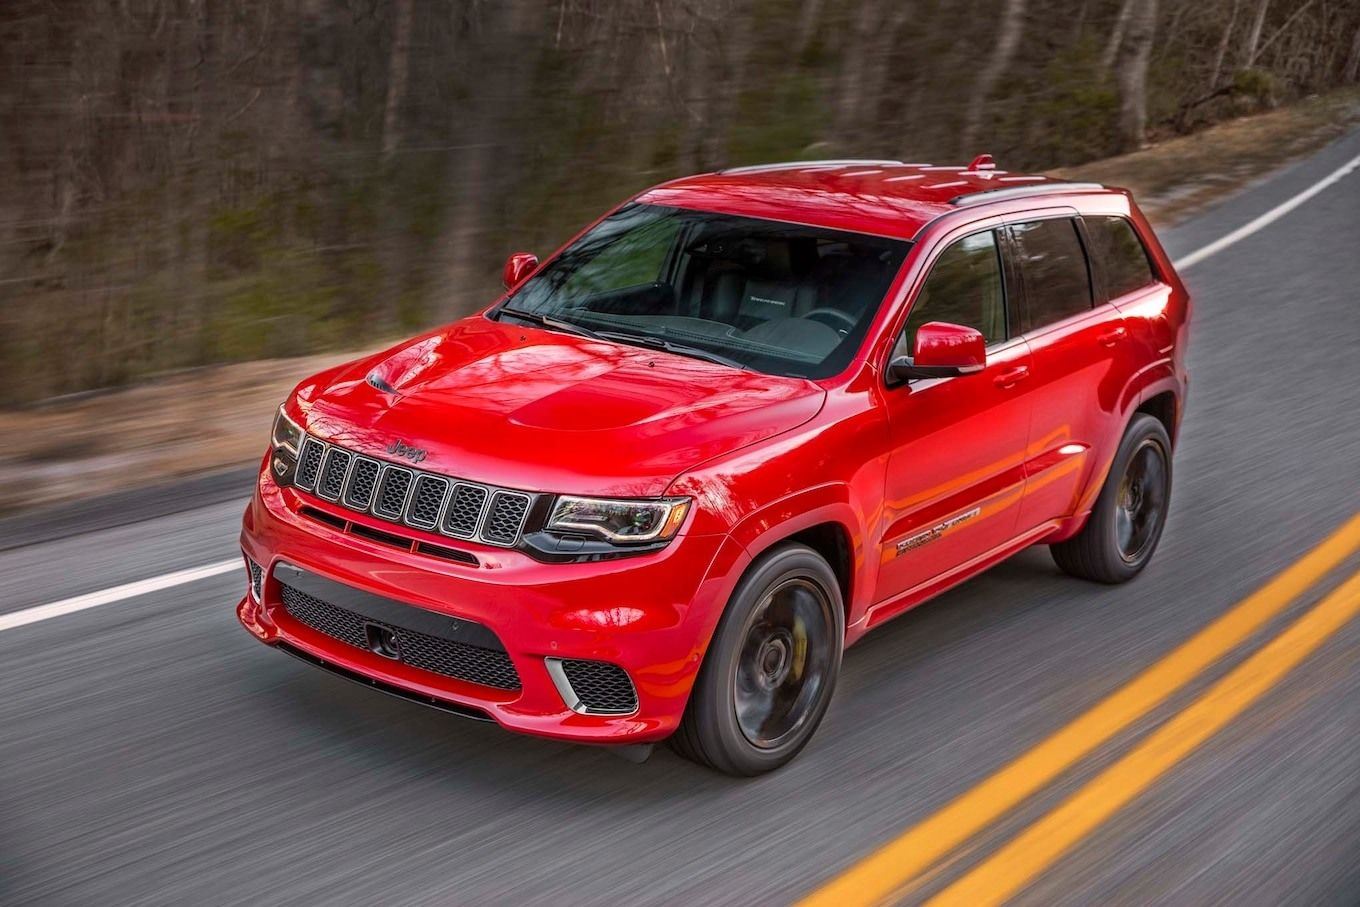 2018 Jeep Grand Cherokee Srt Picture Release Date And Review Car Review 2018 Jeep Grand Cherokee Srt Jeep Grand Cherokee Jeep Grand